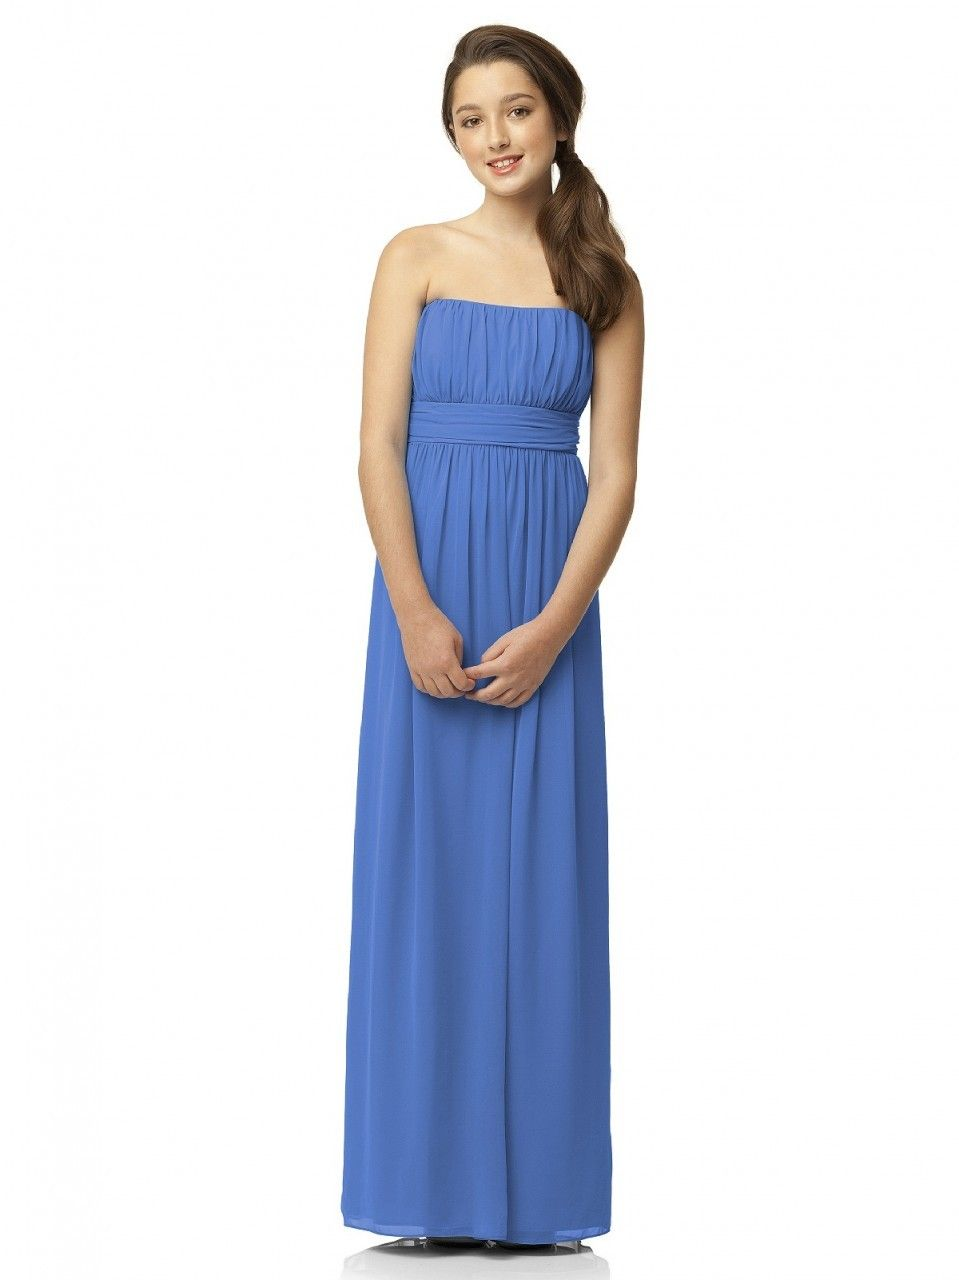 Dessy jr bridesmaid dresses dessy jr junior bridesmaid dresses dessy collection junior bridesmaid style jr 519 is a full length strapless lux chiffon junior dress w shirred bodice and matching sewn in sash at empire ombrellifo Gallery